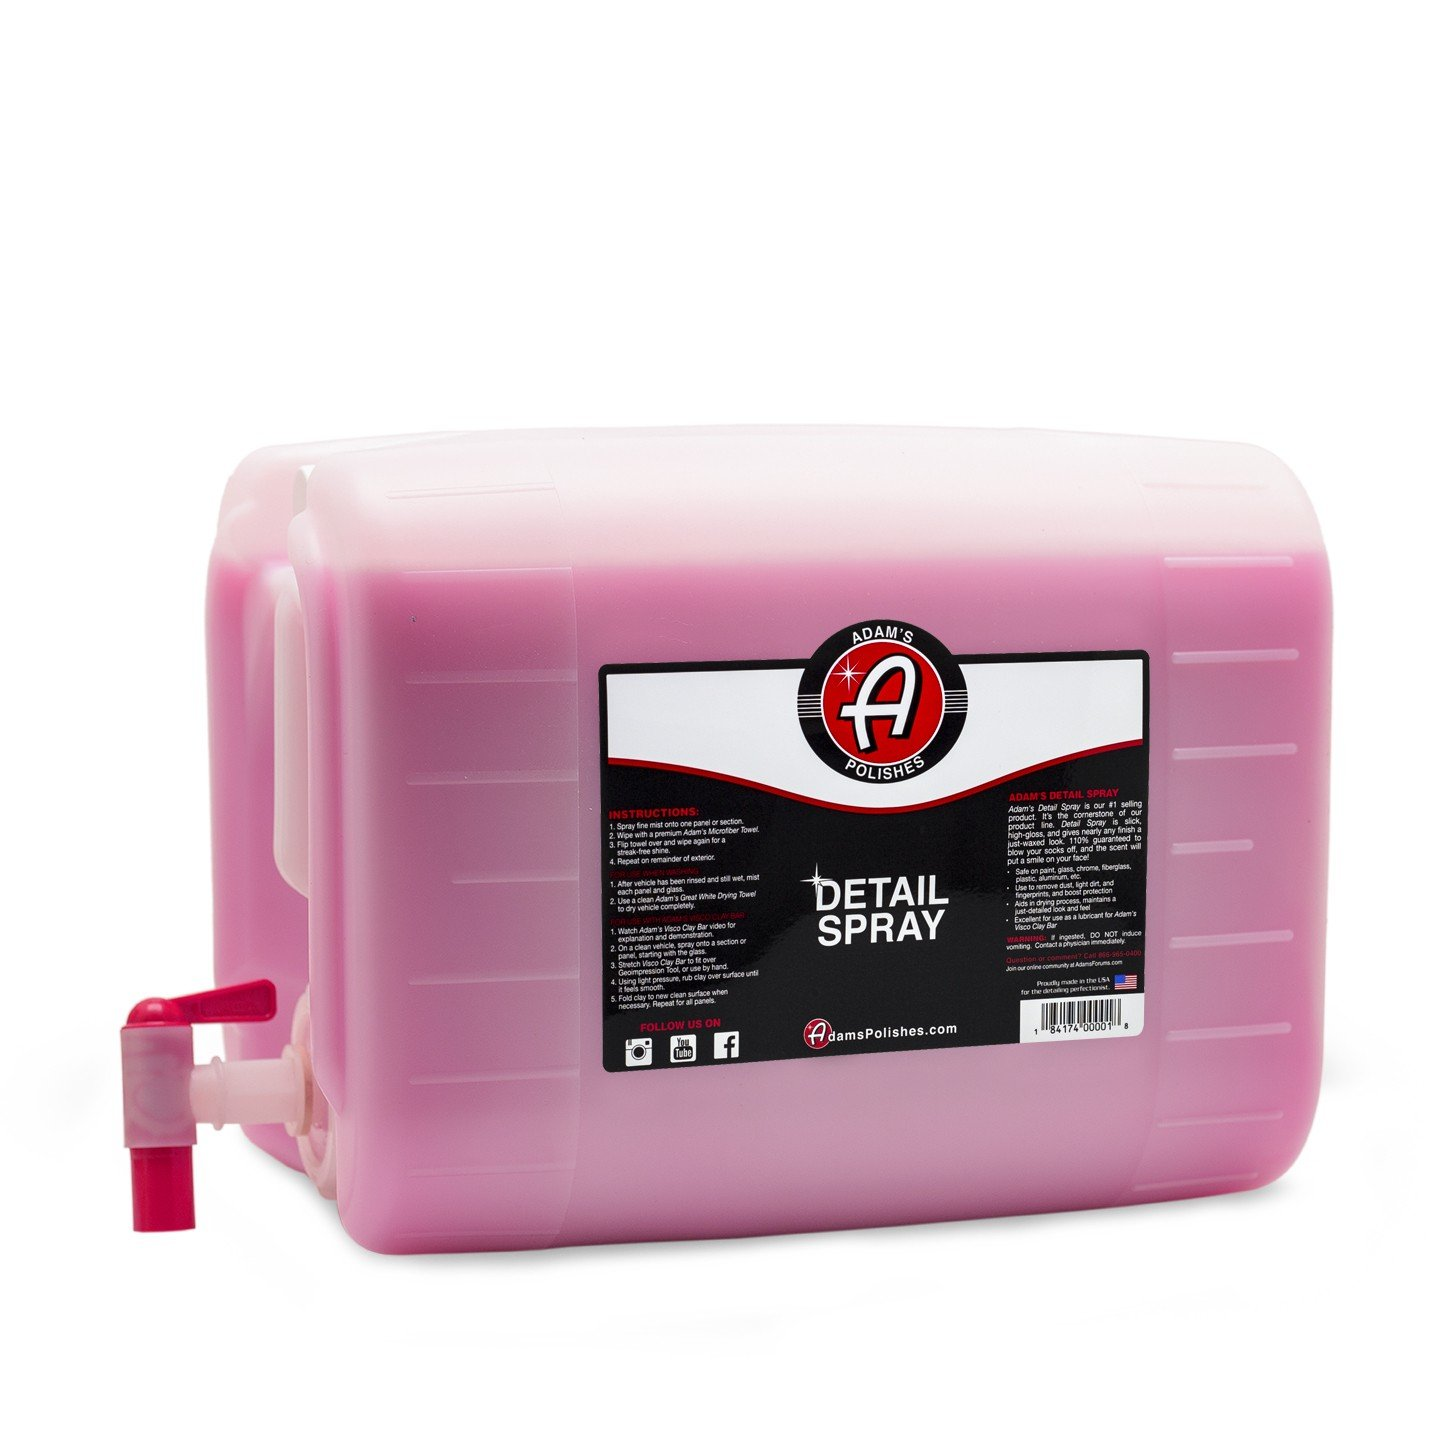 Adam's Detail Spray - Enhance Gloss, Depth, Shine - Extends Protection with Wax Boosting Technology - Our Most Iconic Product, Guaranteed to Outshine The Competition (5 Gallon) by Adam's Polishes (Image #1)